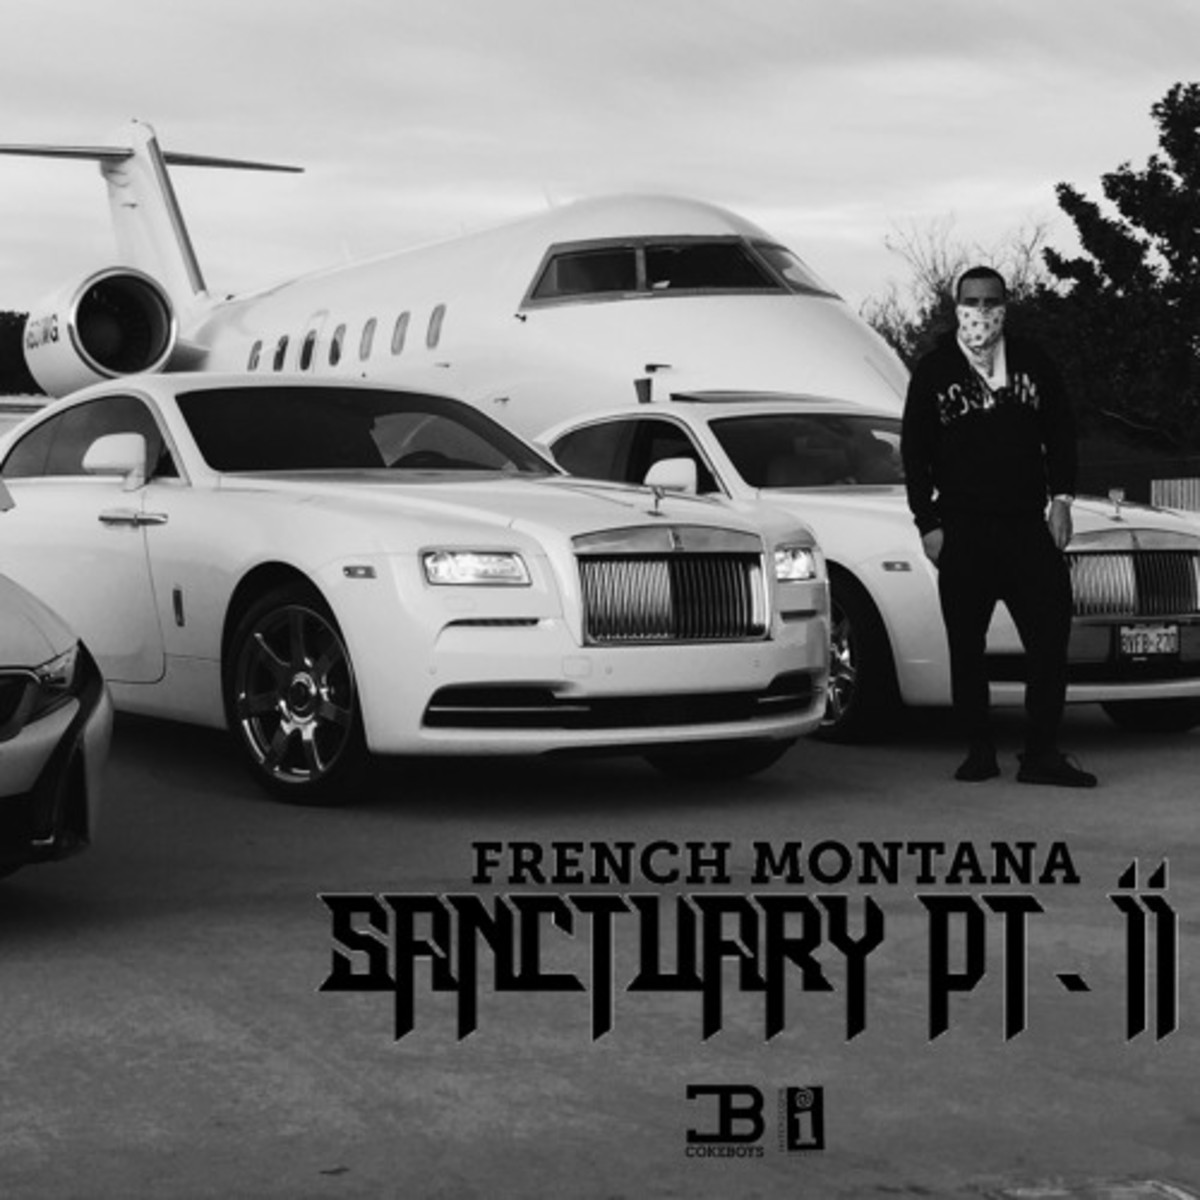 french-montana-sanctuary-pt-2.jpg